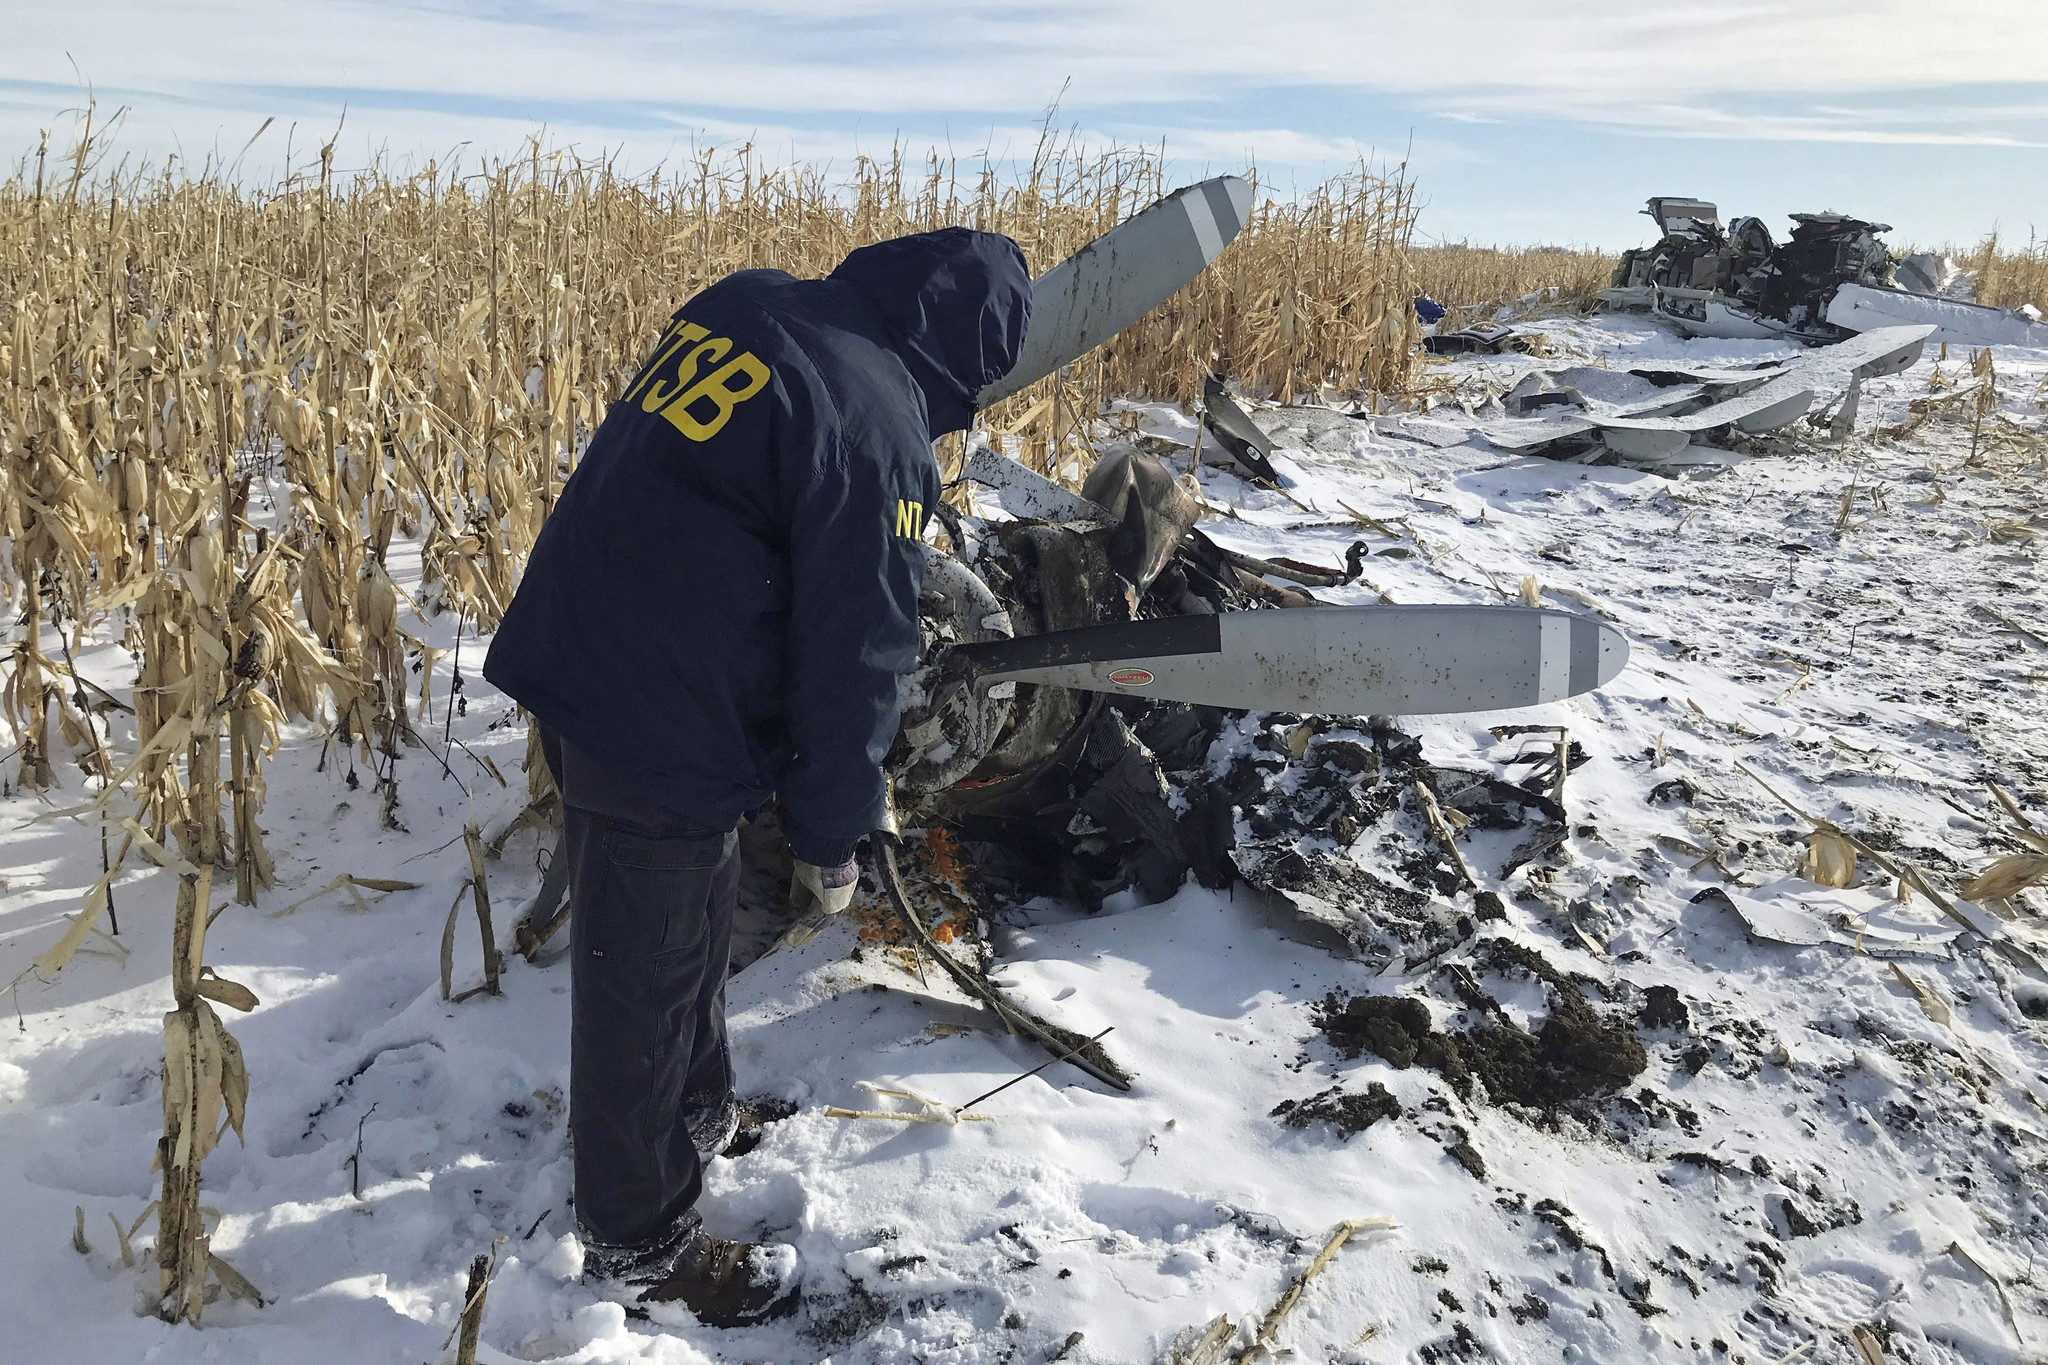 Pilot of plane that crashed in South Dakota, killing 9, was given permission to fly despite wintry weather